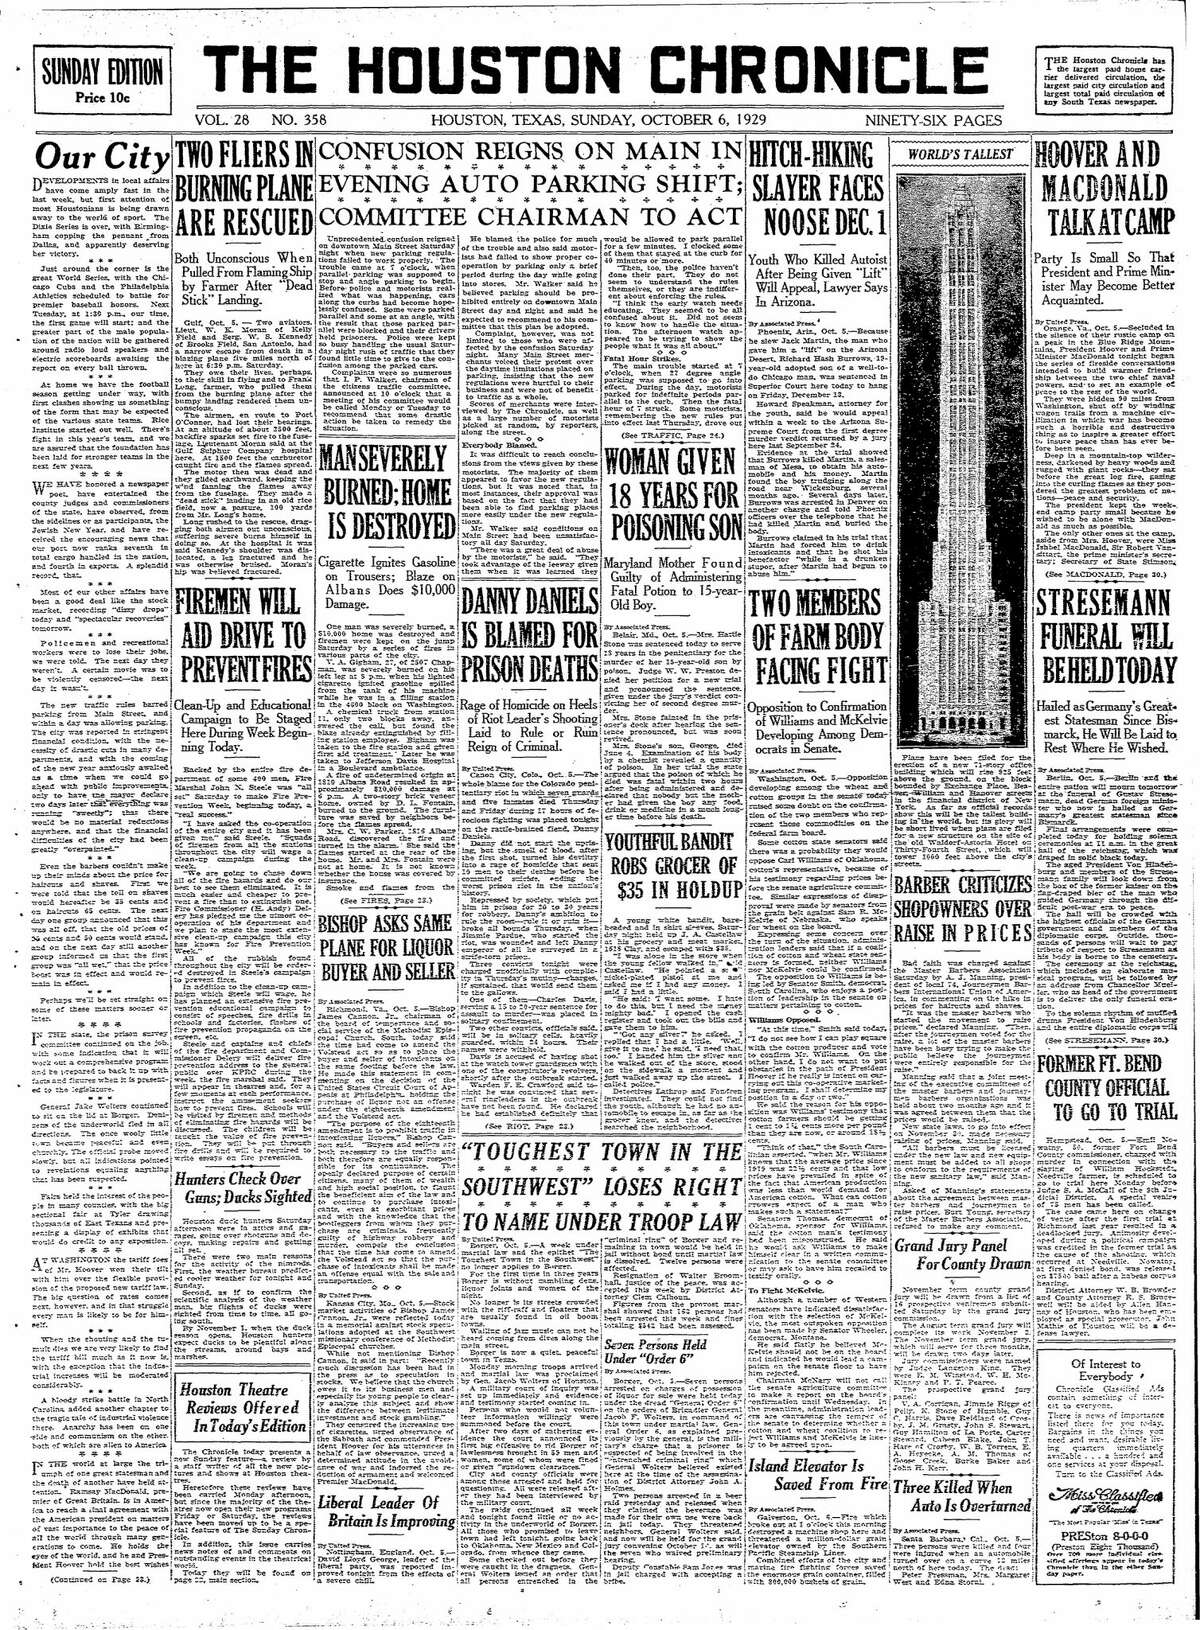 Houston Chronicle front page from Oct. 6 1929.